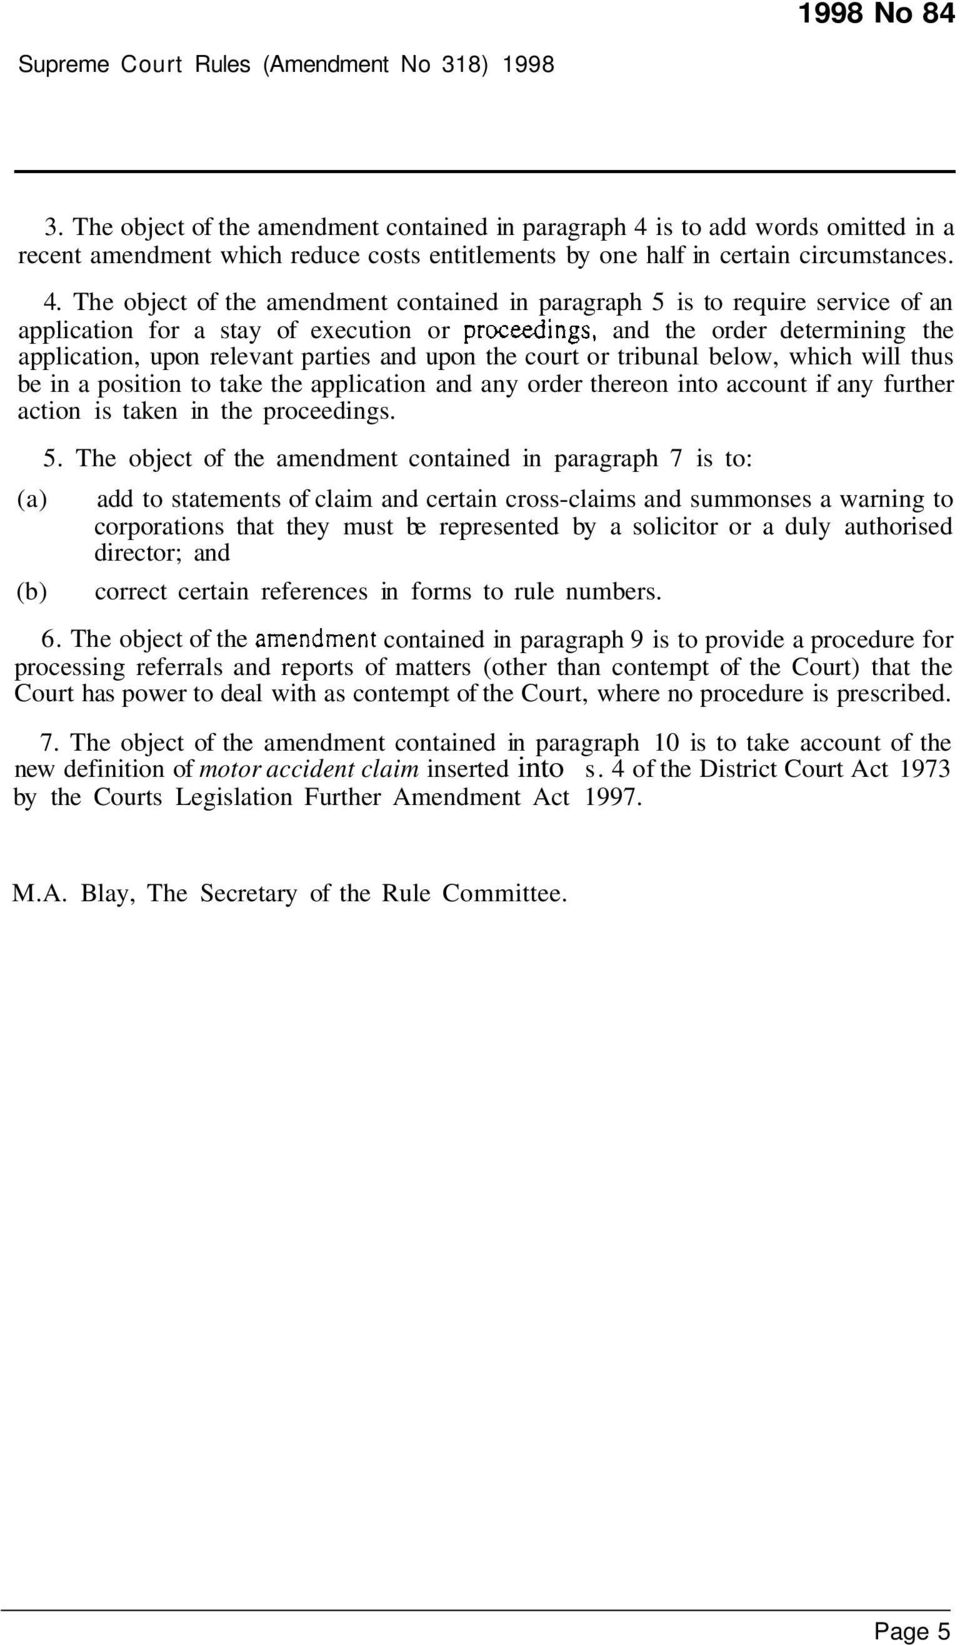 The object of the amendment contained in paragraph 5 is to require service of an application for a stay of execution or proceedings, and the order determining the application, upon relevant parties